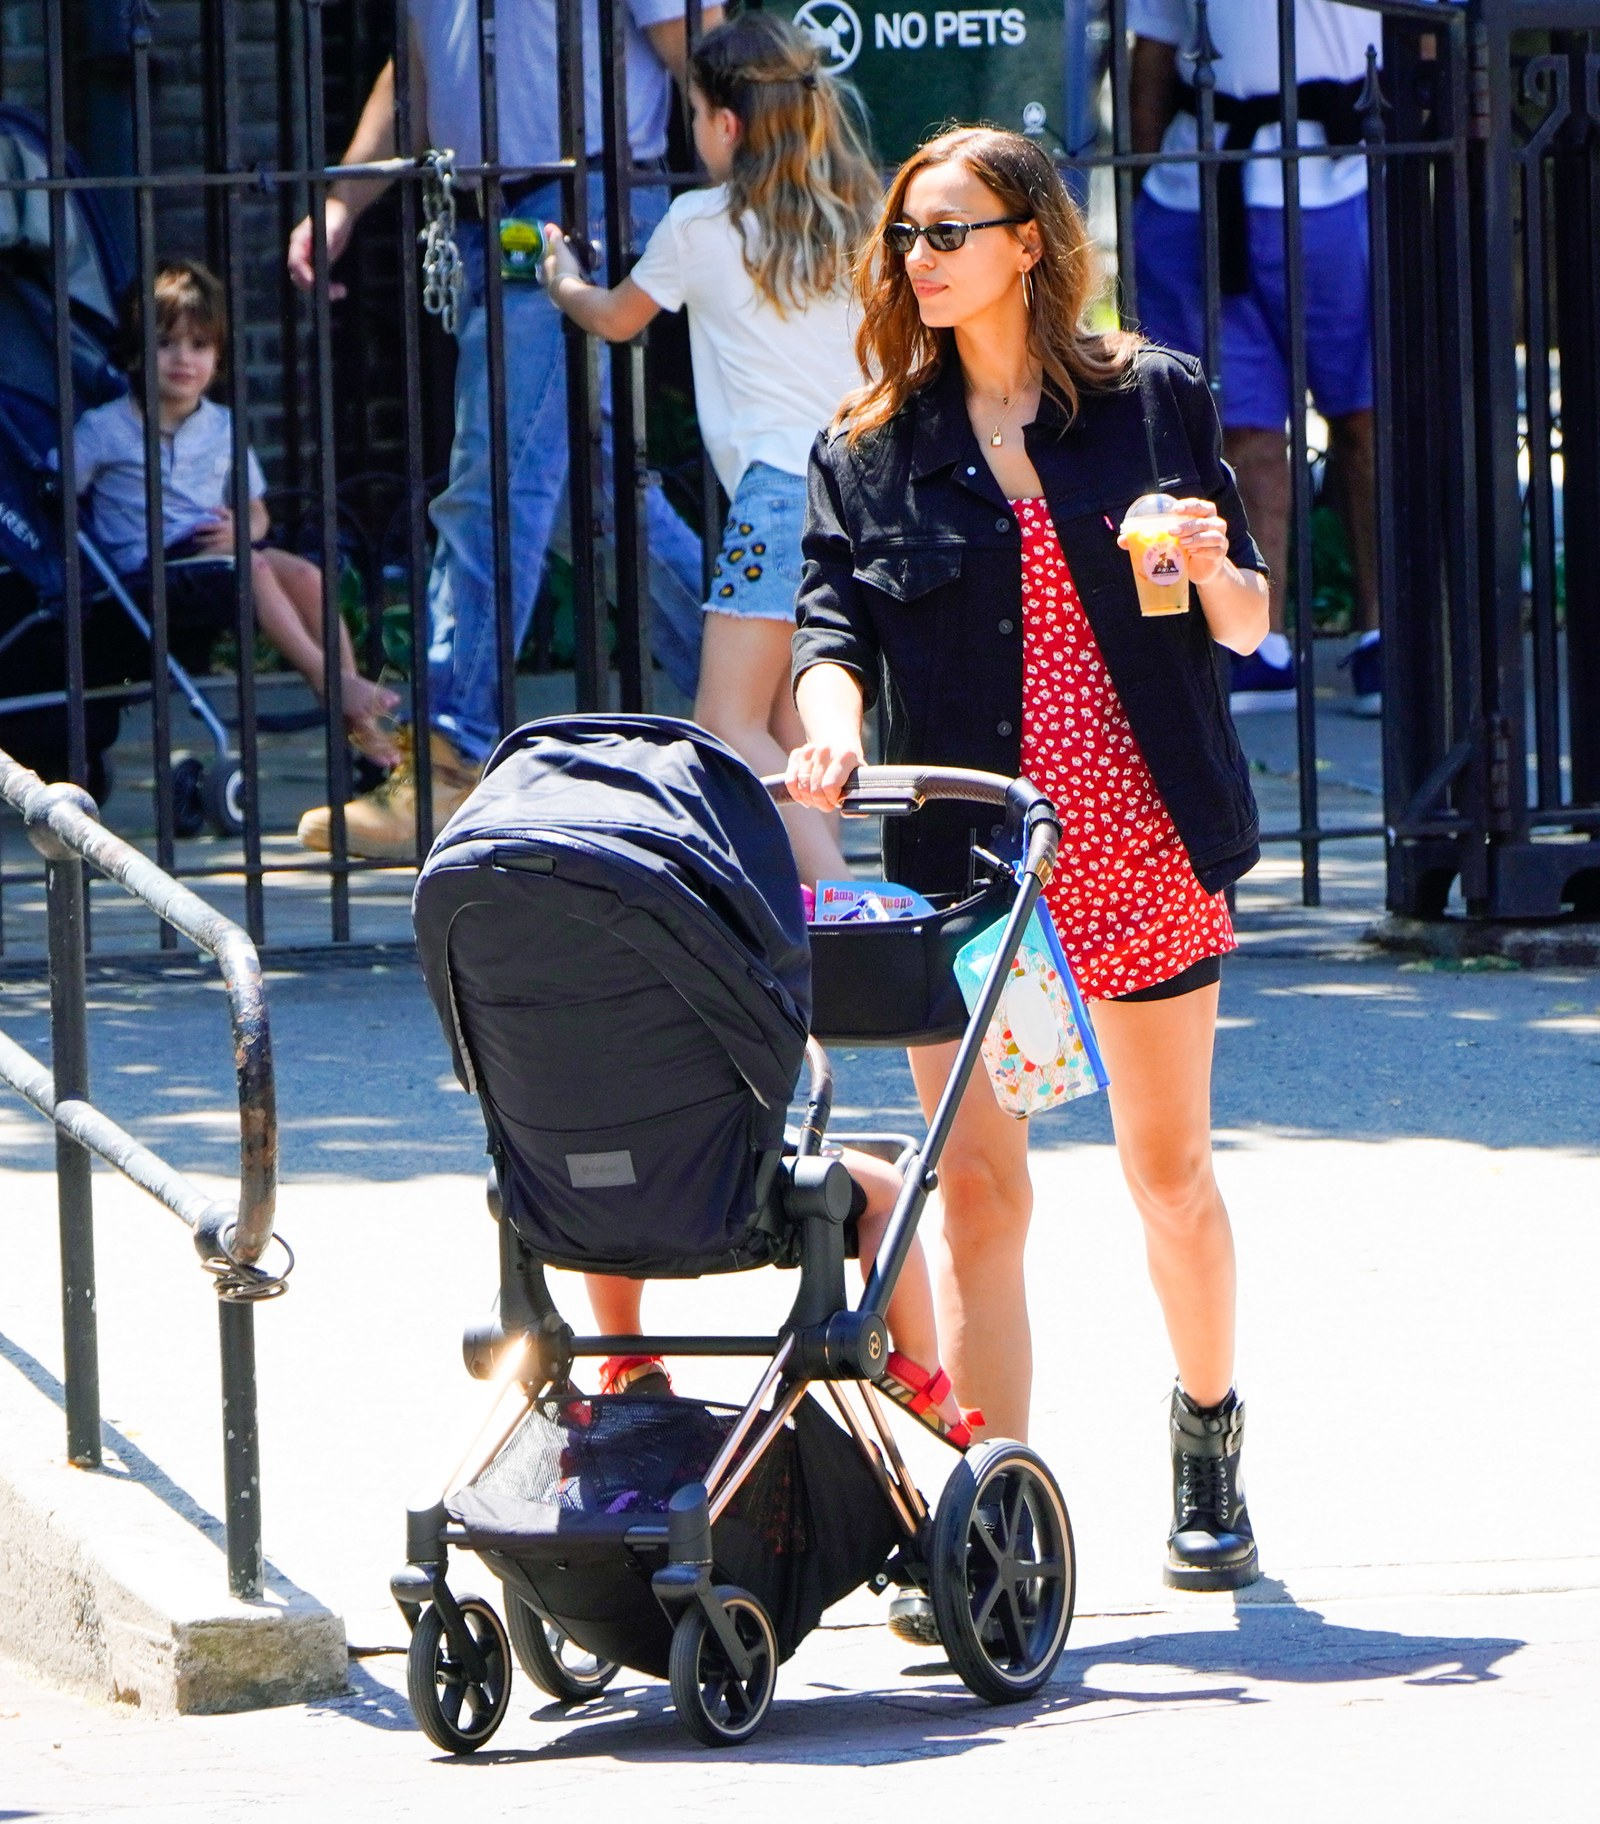 Irina Shayk plays with her daughter Lea in New York City.